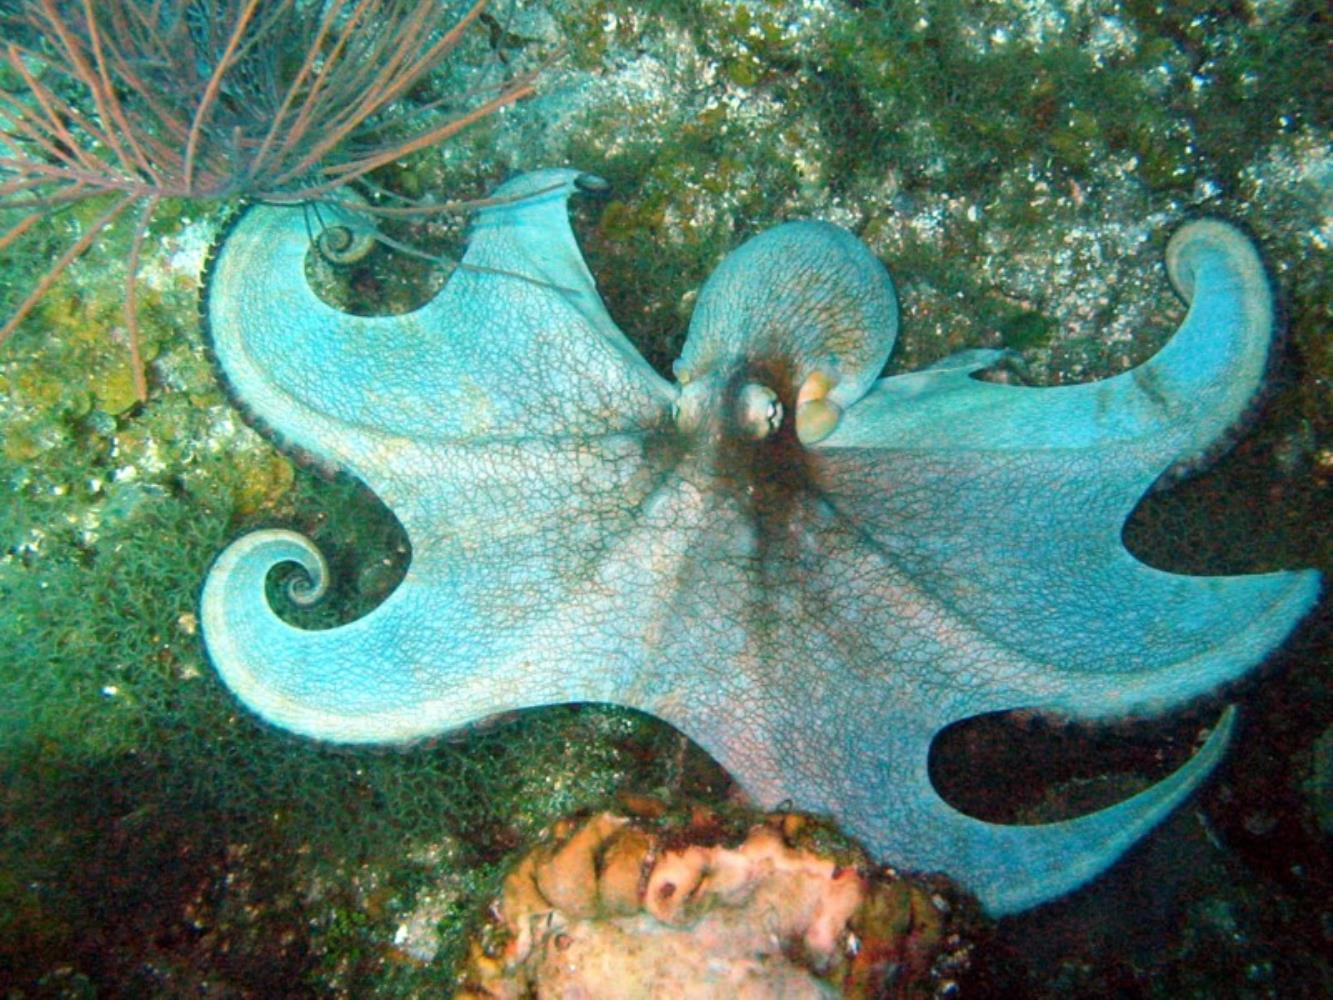 Caribbean Reef Octopus Information and Picture | Sea Animals